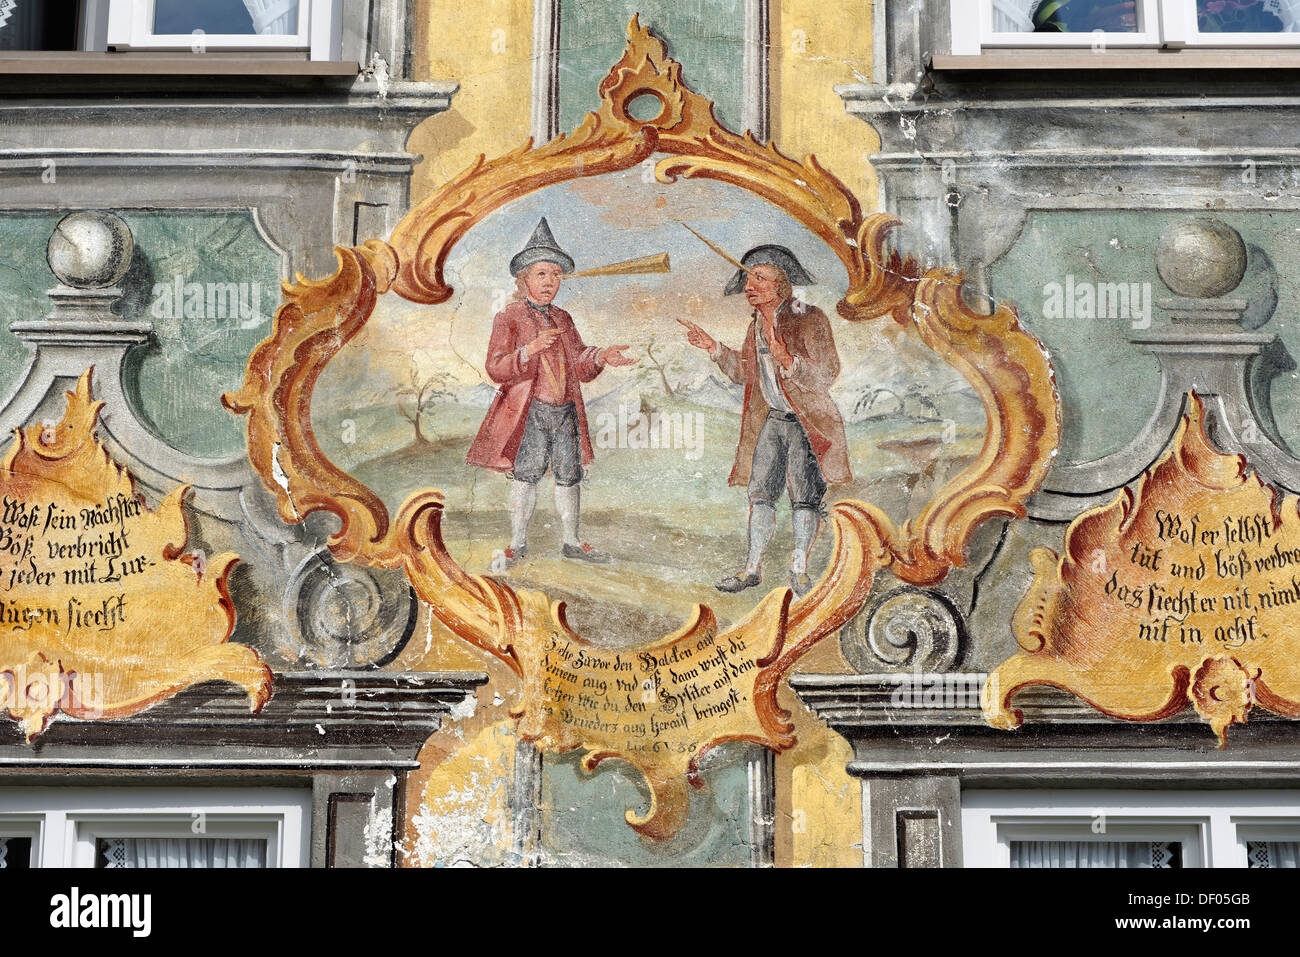 Parable of the splinter and the beam, Lueftl-Painting by F. Karner, 1764, former farmhouse, Im Gries, Mittenwald, Upper Bavaria - Stock Image